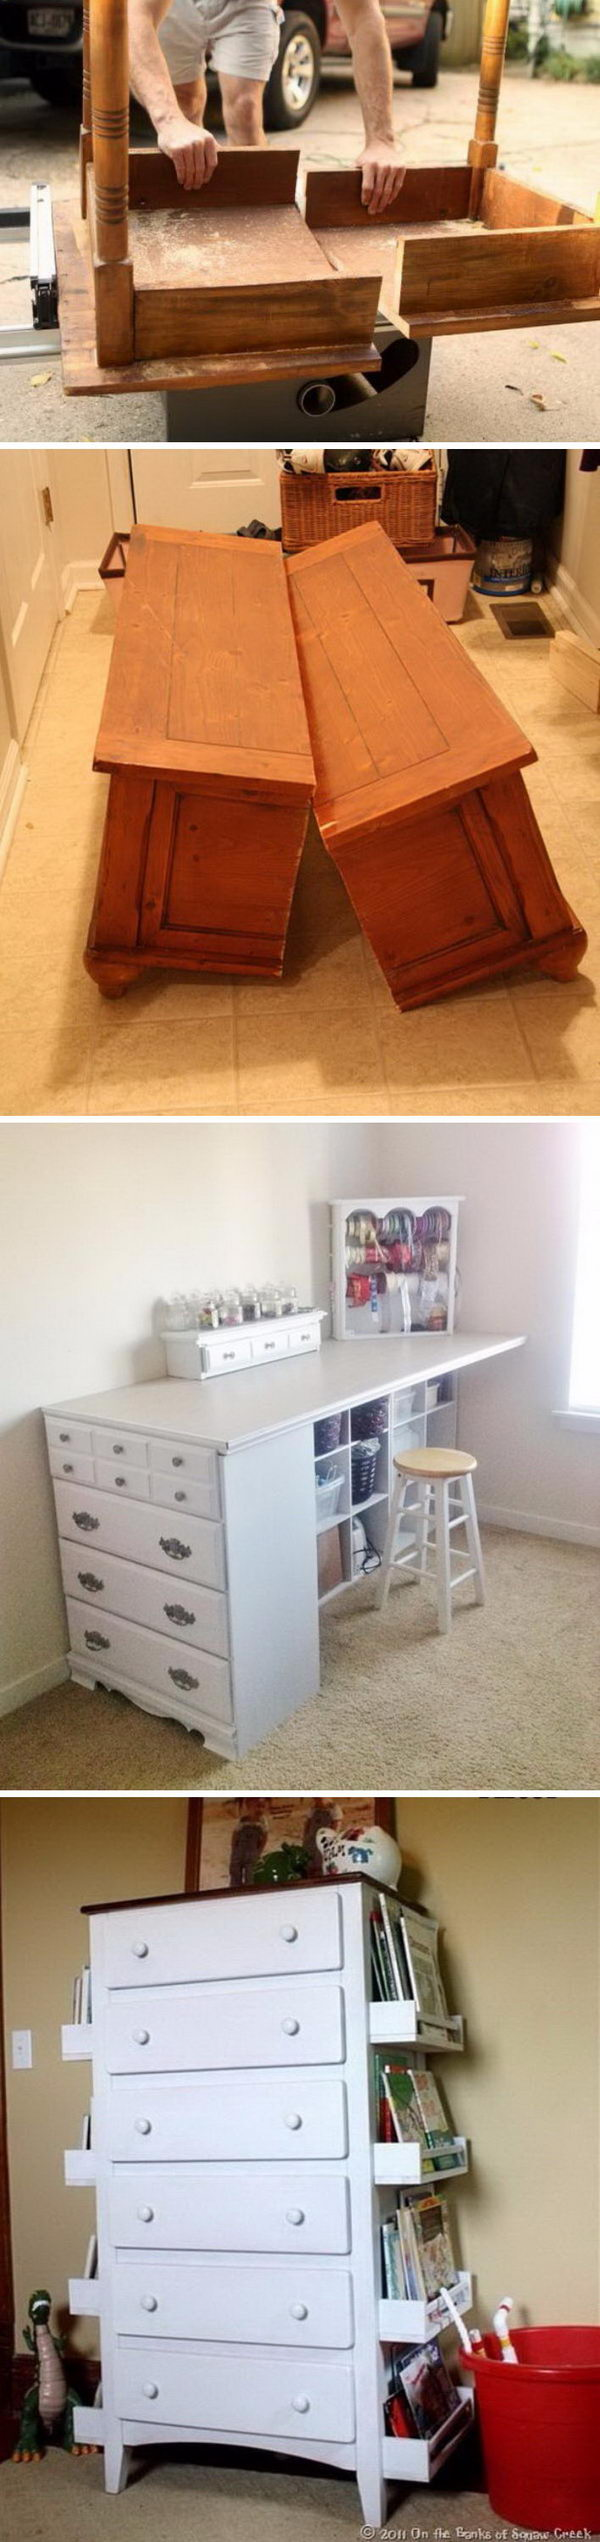 Awesome Diy Projects And Tutorials To Redo Your Old Furniture